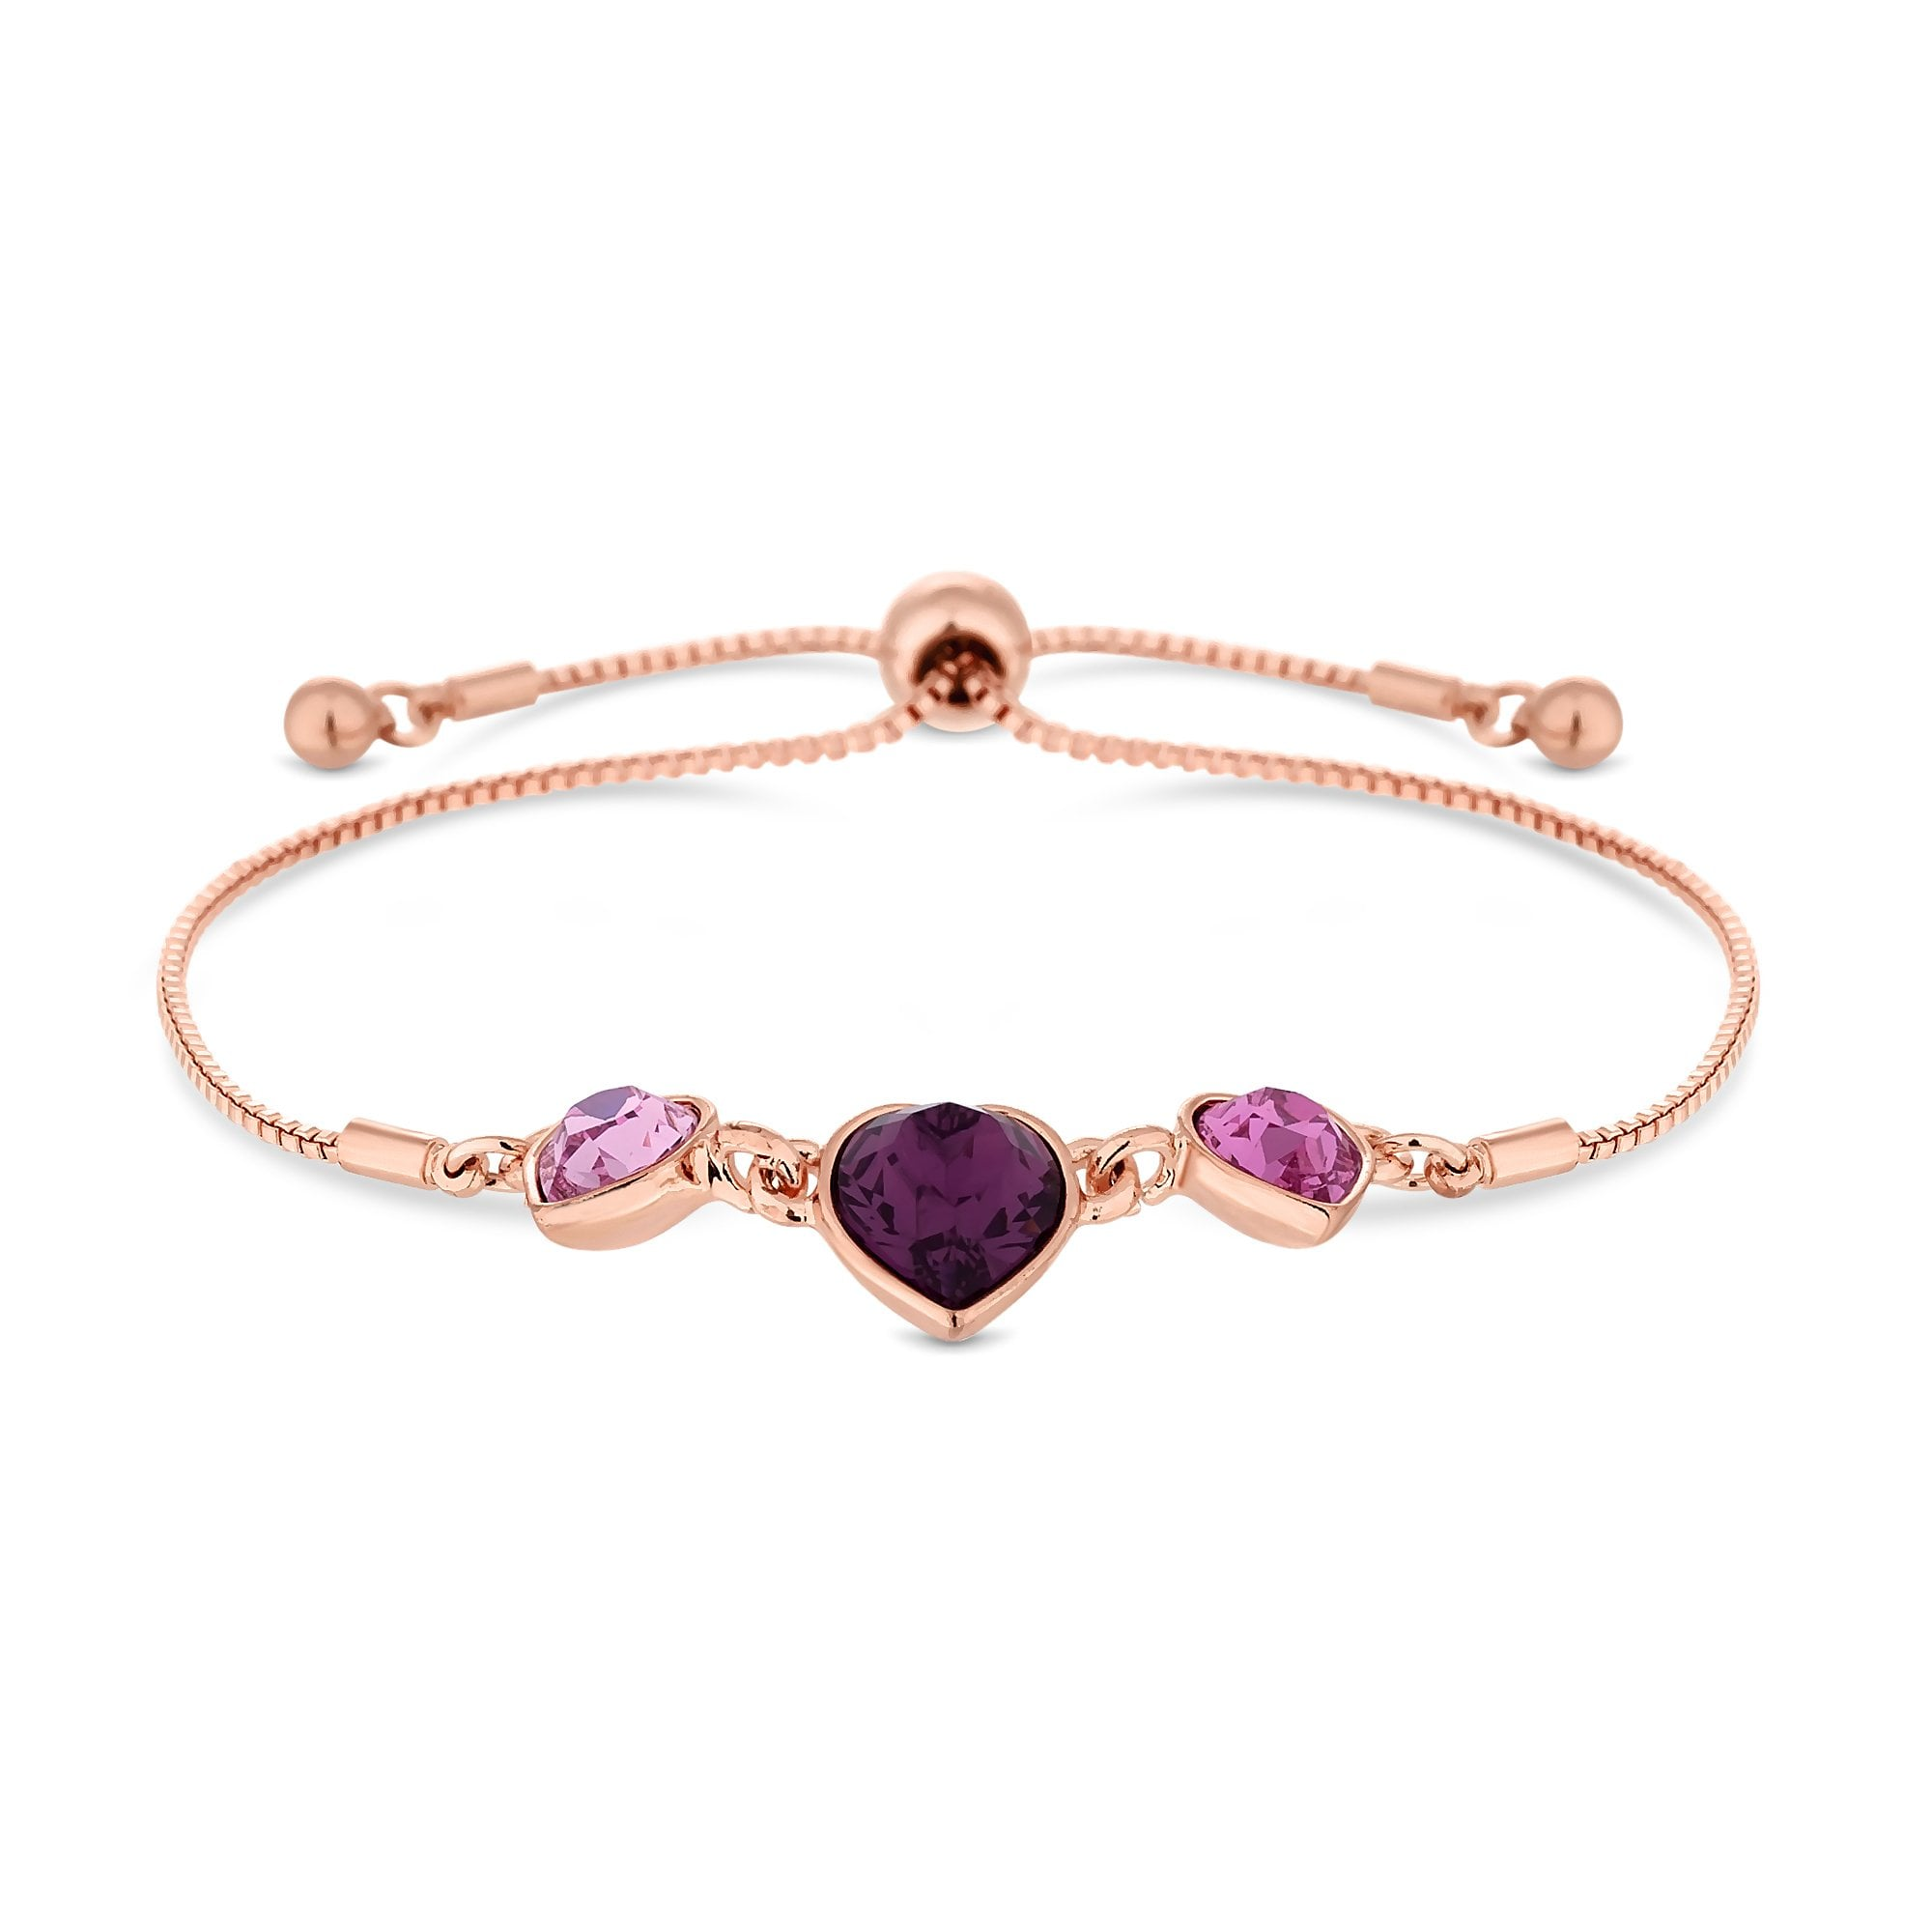 95fd42b9931a Jon Richard made with Swarovski® crystals Rose Gold Plated Pink Heart  Toggle Bracelet Embellished With